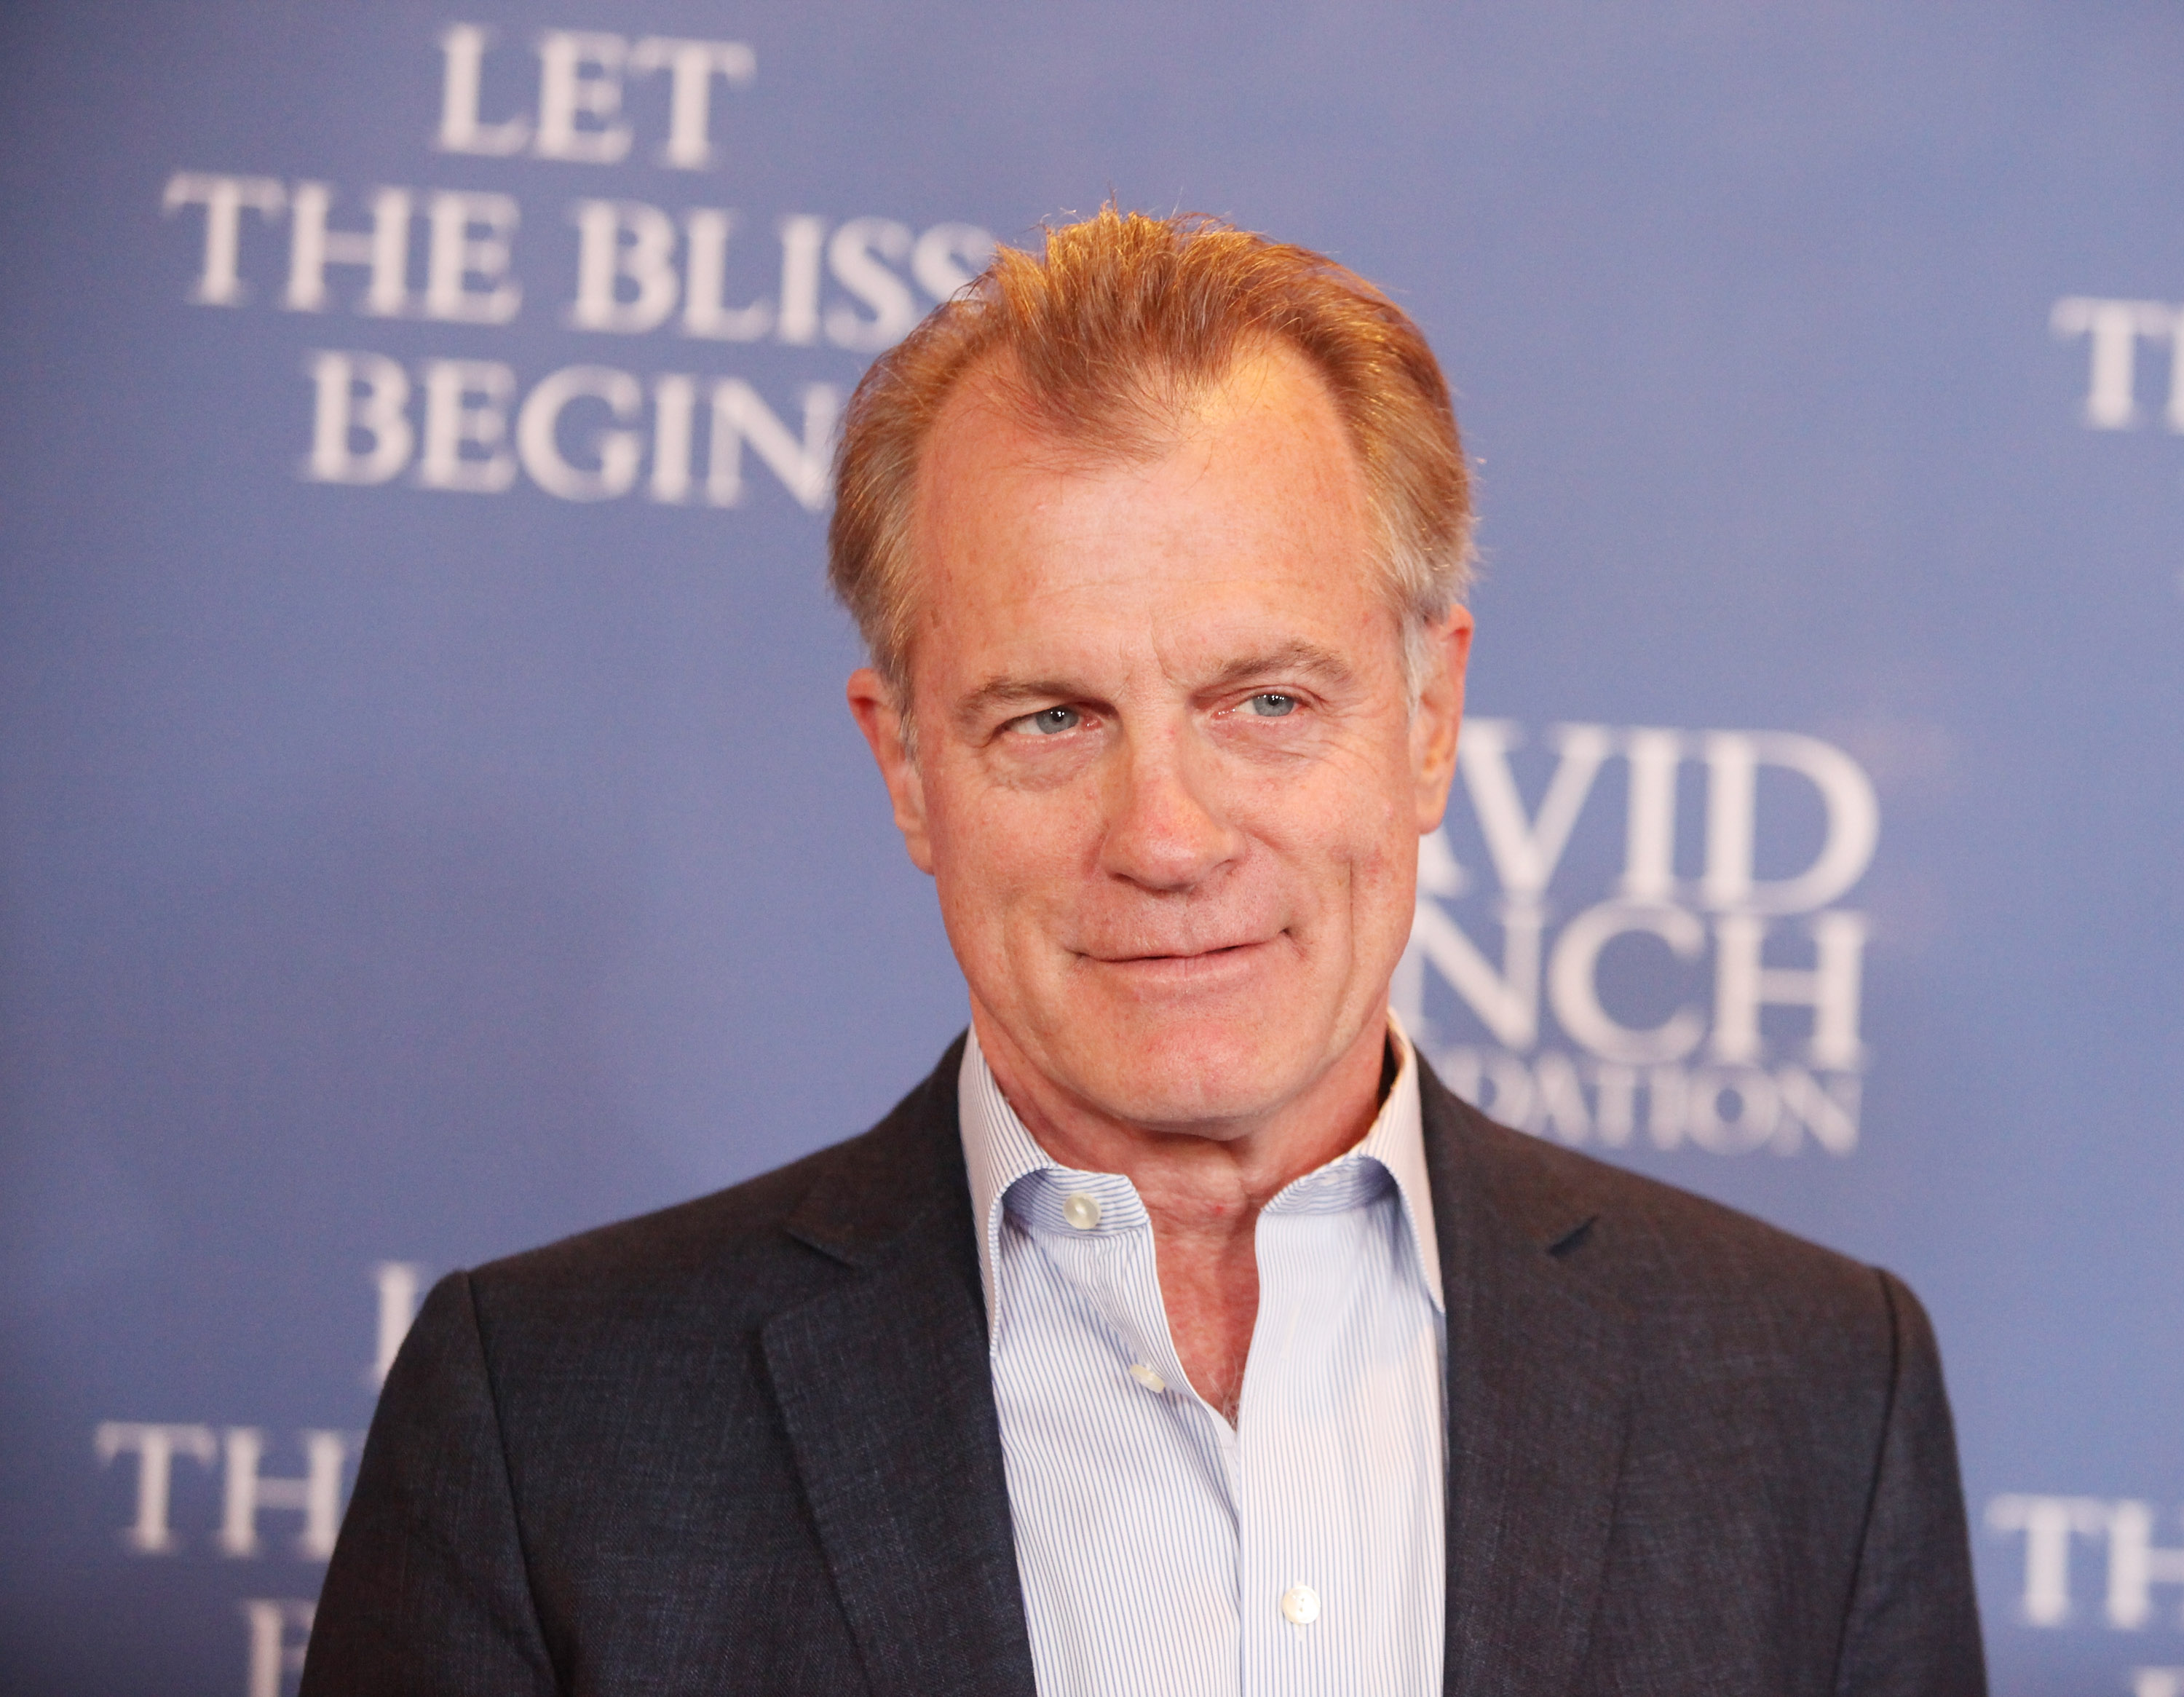 BEVERLY HILLS, CA - JUNE 30: Stephen Collins arrives at The David Lynch Foundation hosts a  Night of Comedy  held at the Beverly Wilshire hotel on June 30, 2012 in Beverly Hills, California. (Photo by Michael Tran/FilmMagic)